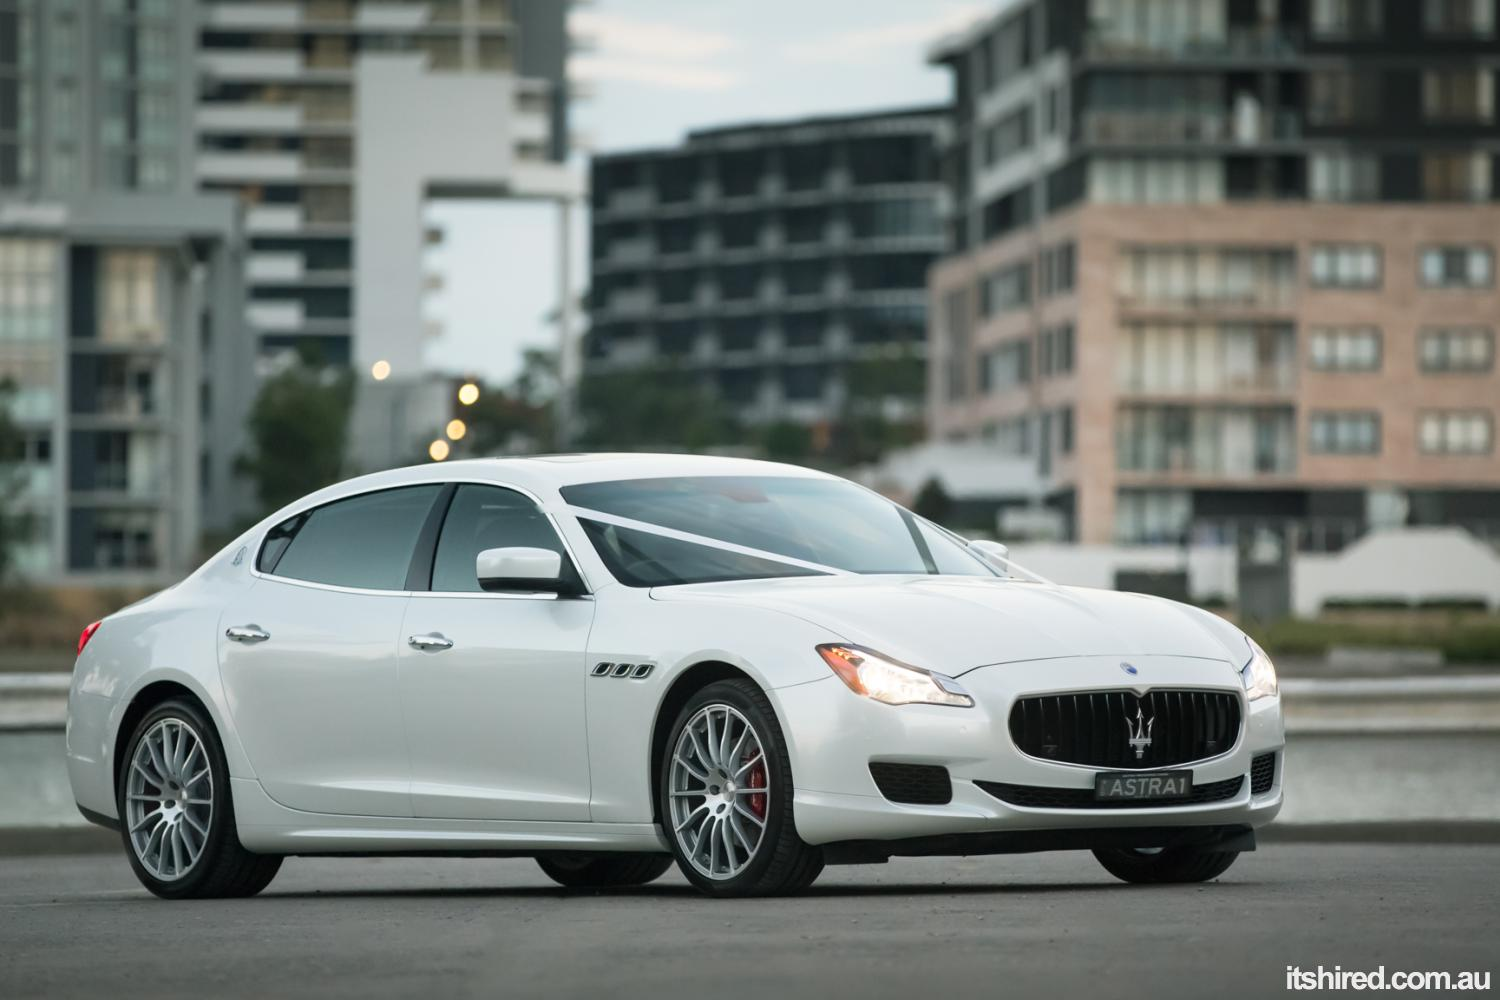 Maserati Quattroporte Wedding Car Hire Sydney Astra Wedding Cars